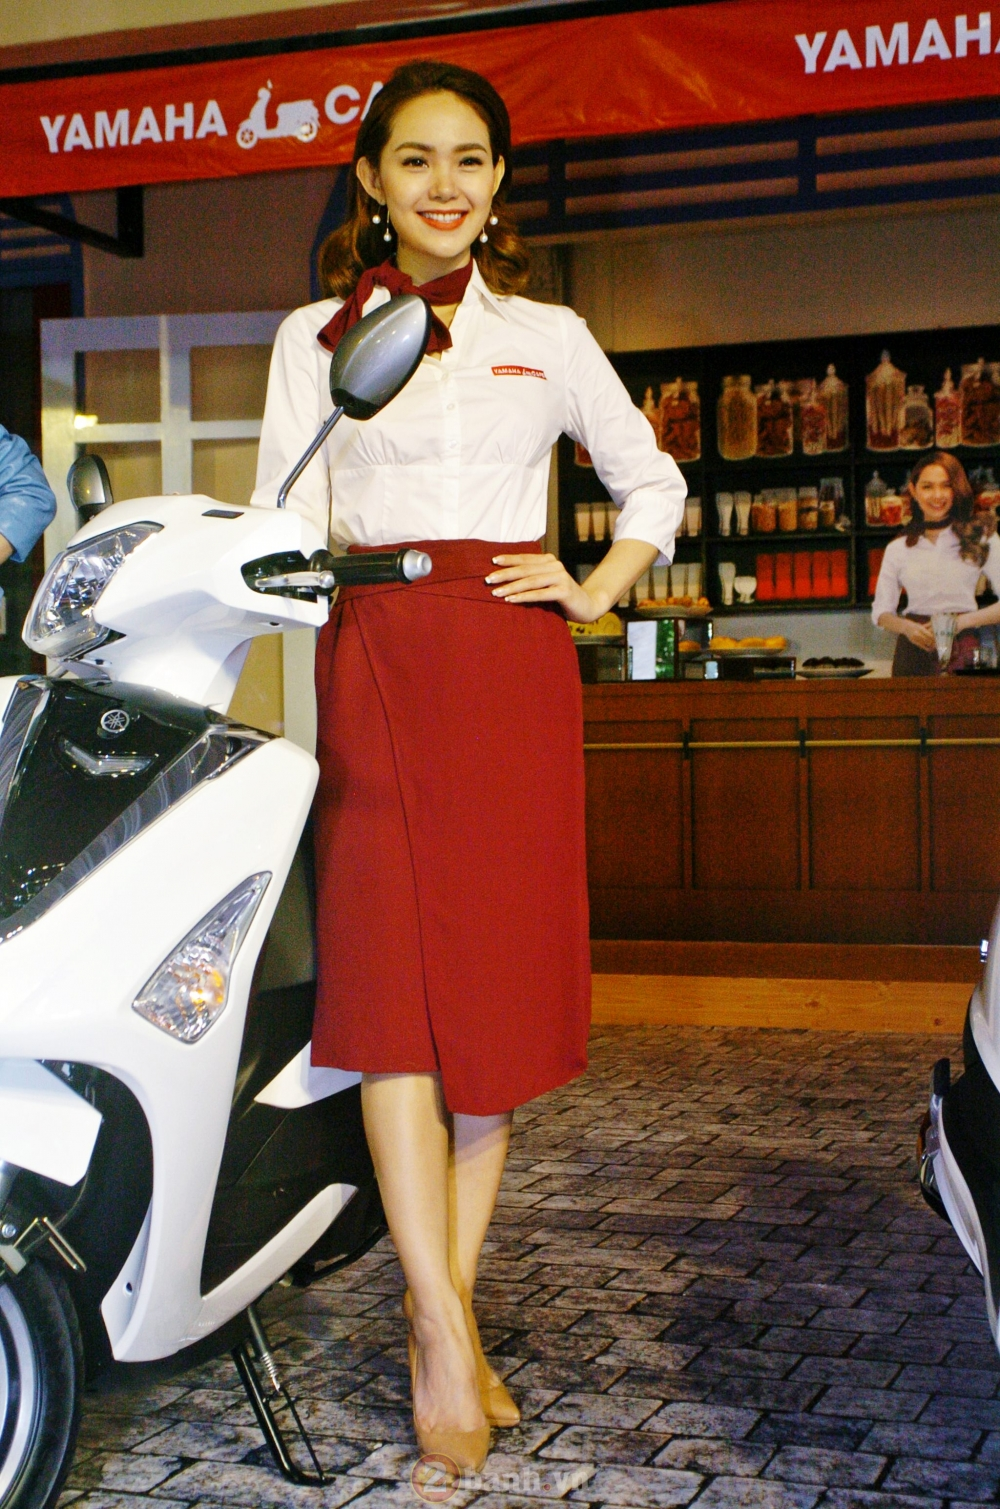 Boi canh the hien ve dep For Beautiful Ride tai Yamaha Cafe - 3